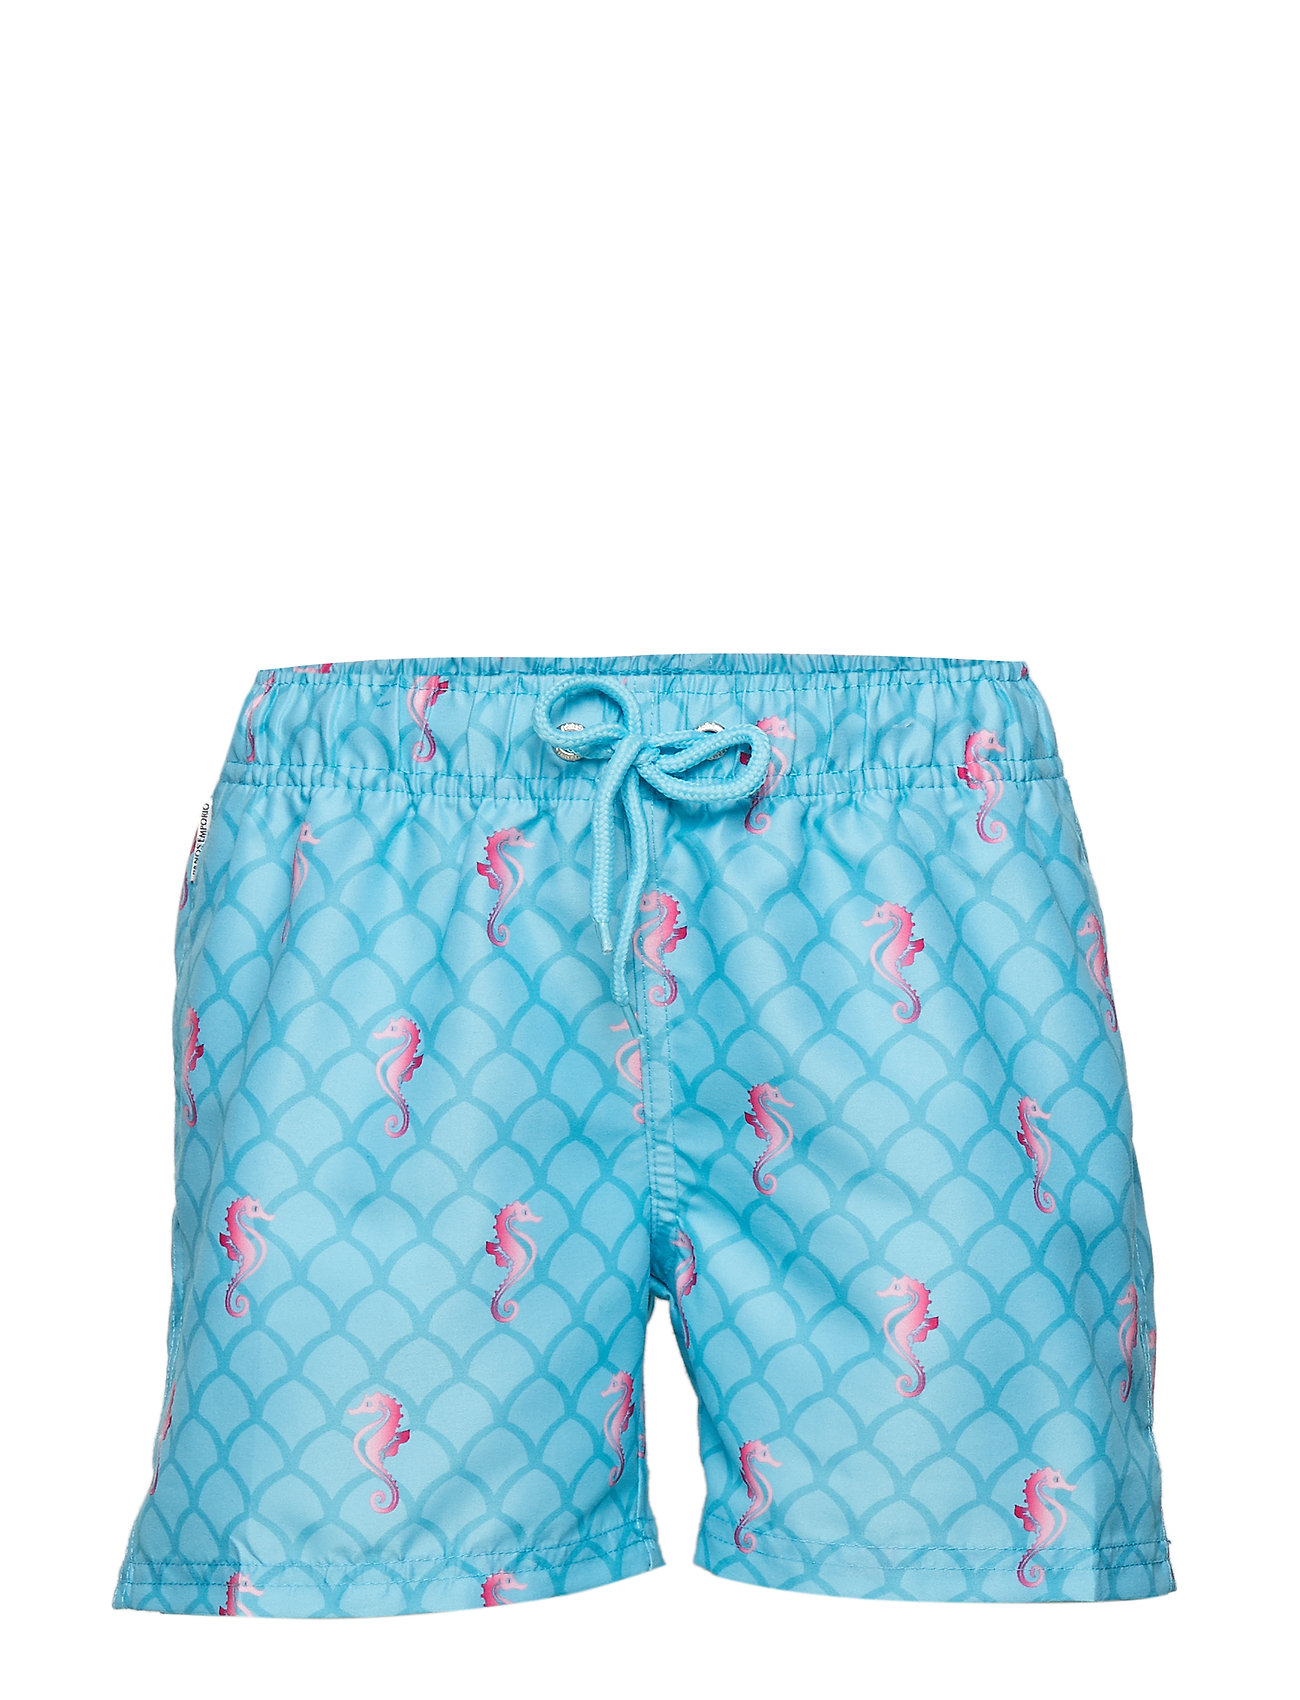 Panos Emporio PANOS EMPORIO HORSE RACE MARIOS LIGHT DENIM BLUE BOY SHORTS - DENIM BLUE